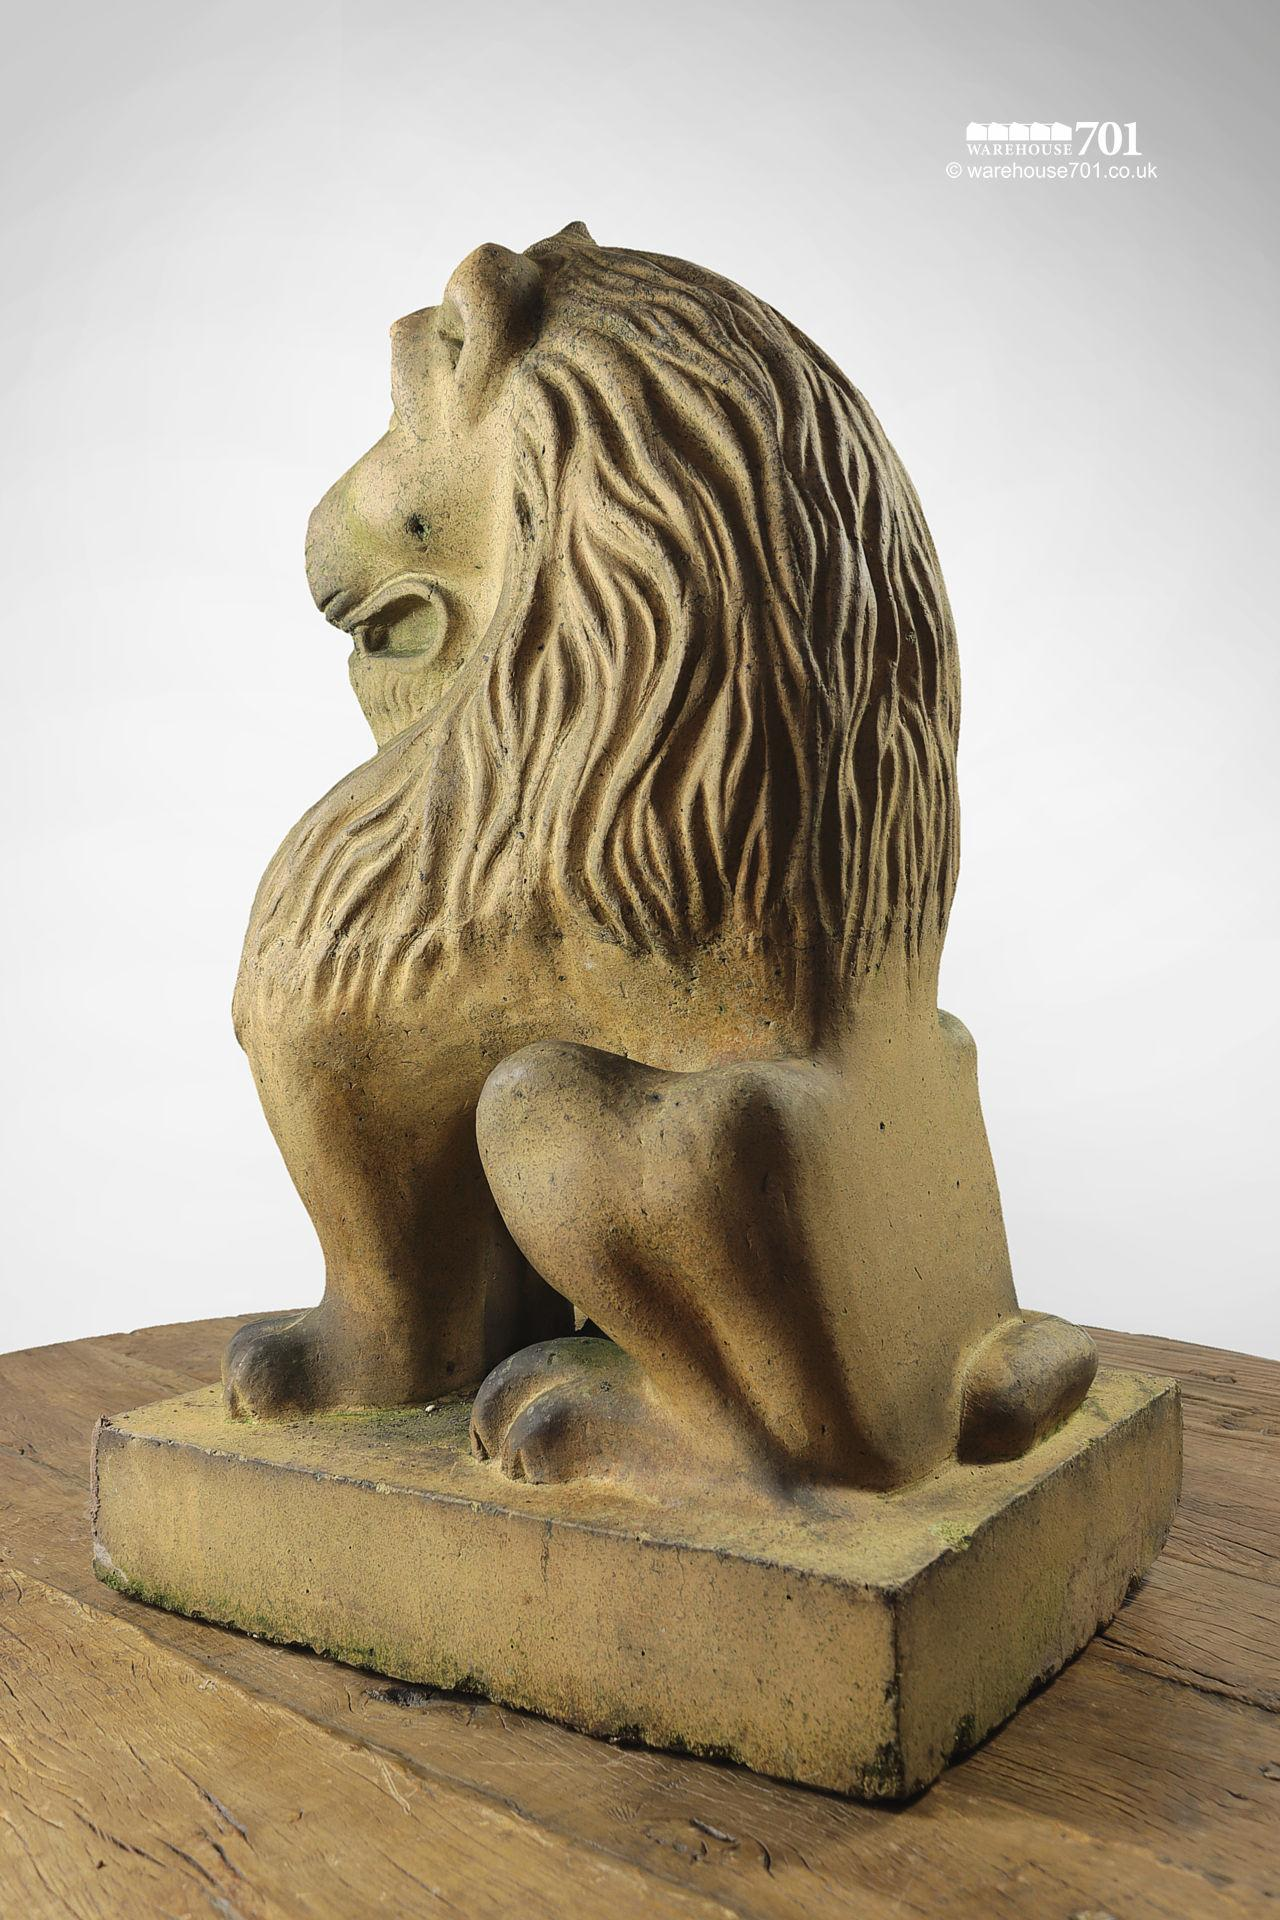 Beautiful Salvaged Ornamental Terracotta Stylised Lion Figure #5